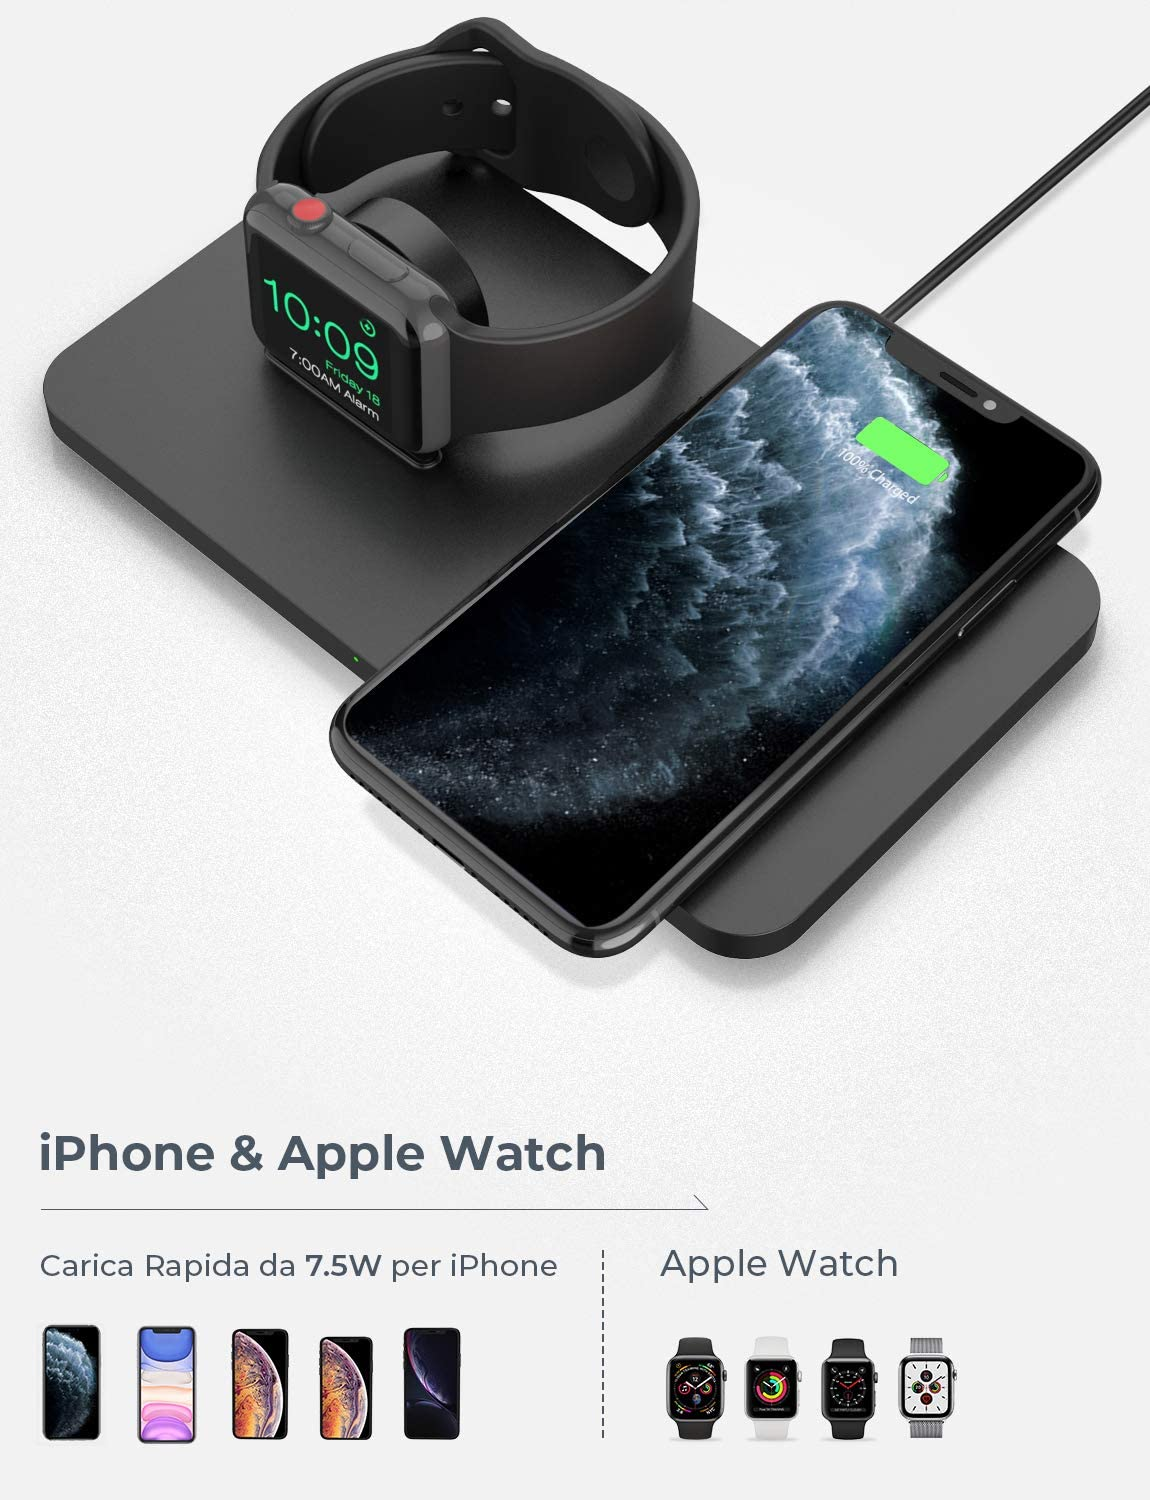 No Magnetic Charging Cable Seneo 2 in 1 Wireless Charging Pad with iWatch Stand for iWatch 5//4//3 Wireless Charger 7.5W for iPhone 11//Pro Max//XR//XS Max//XS//X//8//8P//Airpods Pro with QC 3.0 Adapter